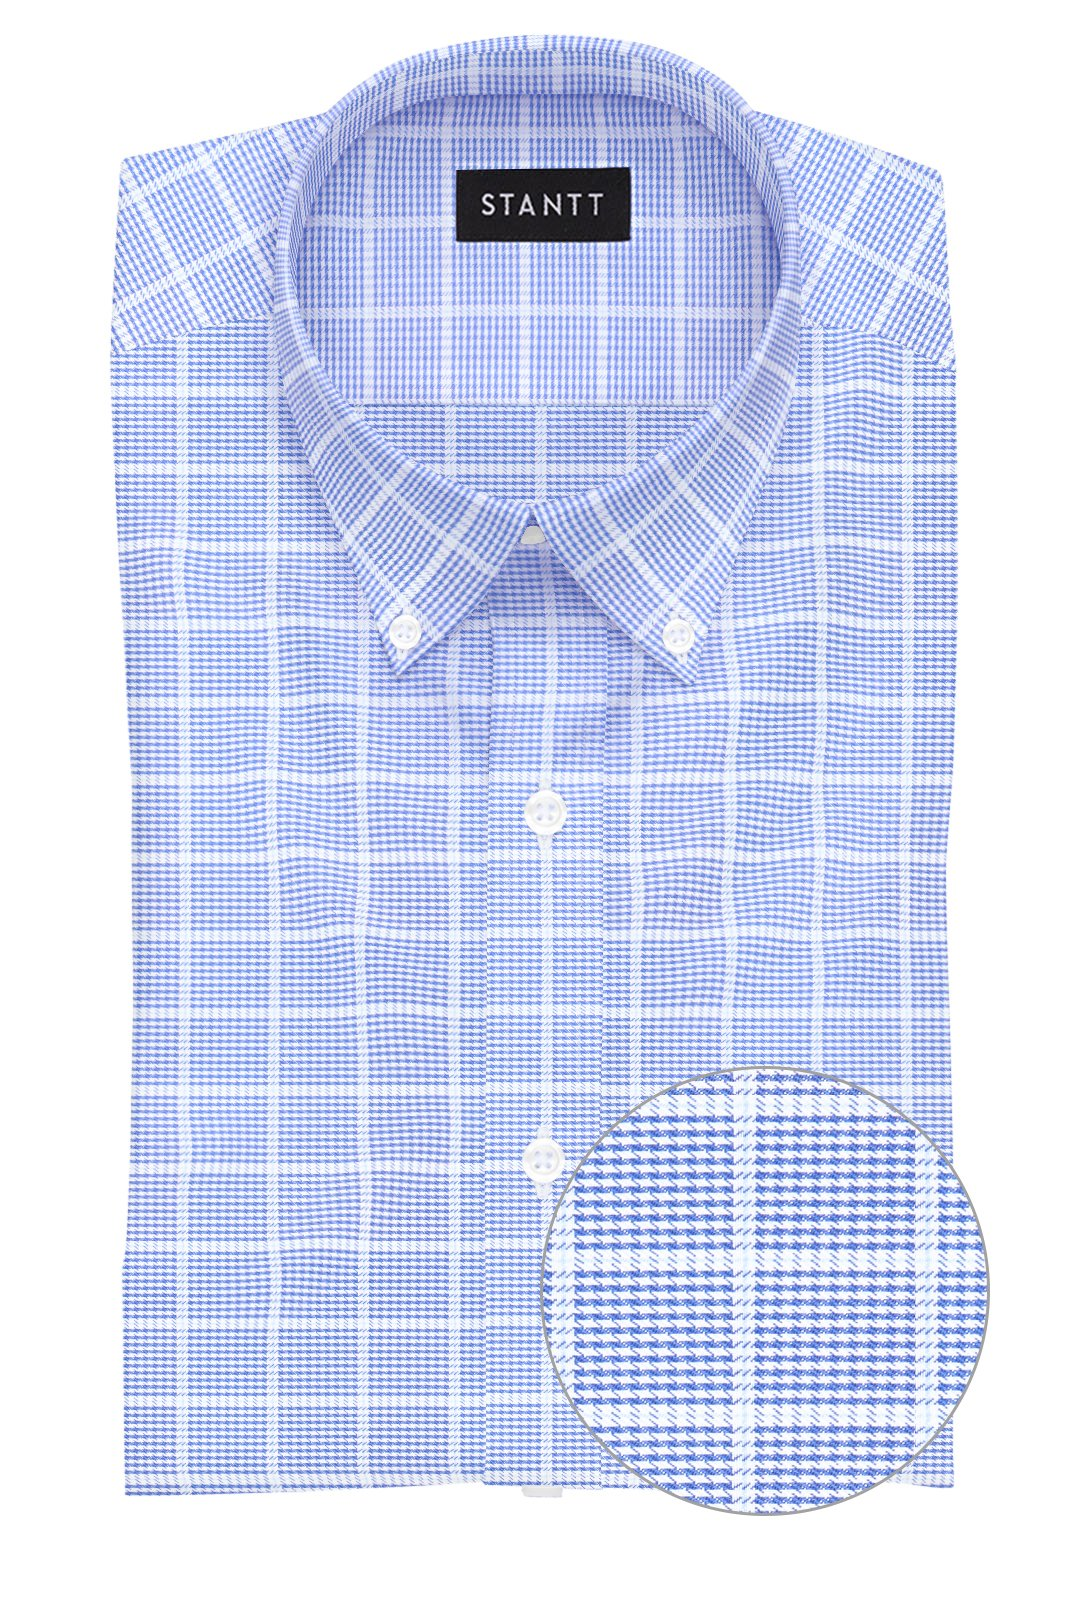 Navy Prince of Wales Check: Button-Down Collar, Barrel Cuff